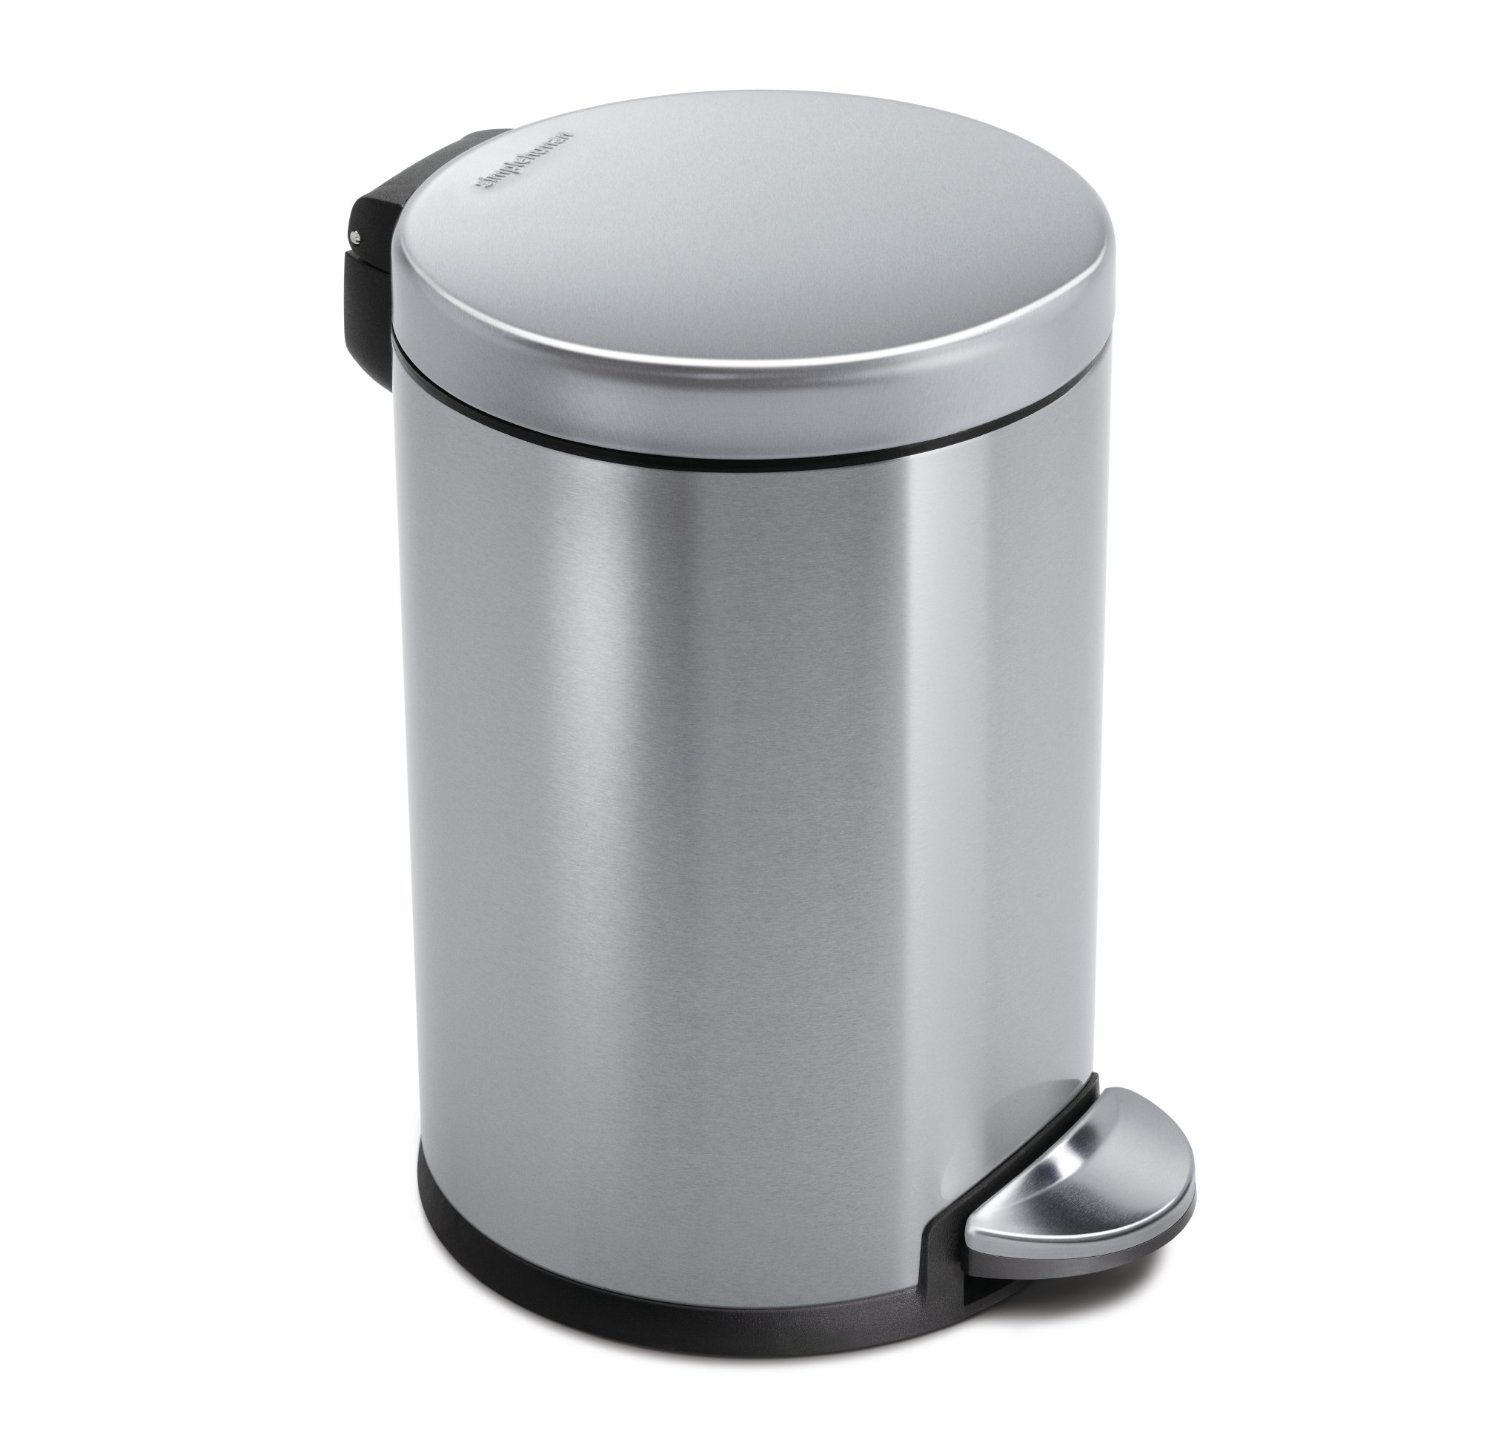 Simplehuman 4 5 L 1 2 Gal Mini Round Step Trash Can Stainless Steel Available Best Kitchen Sink